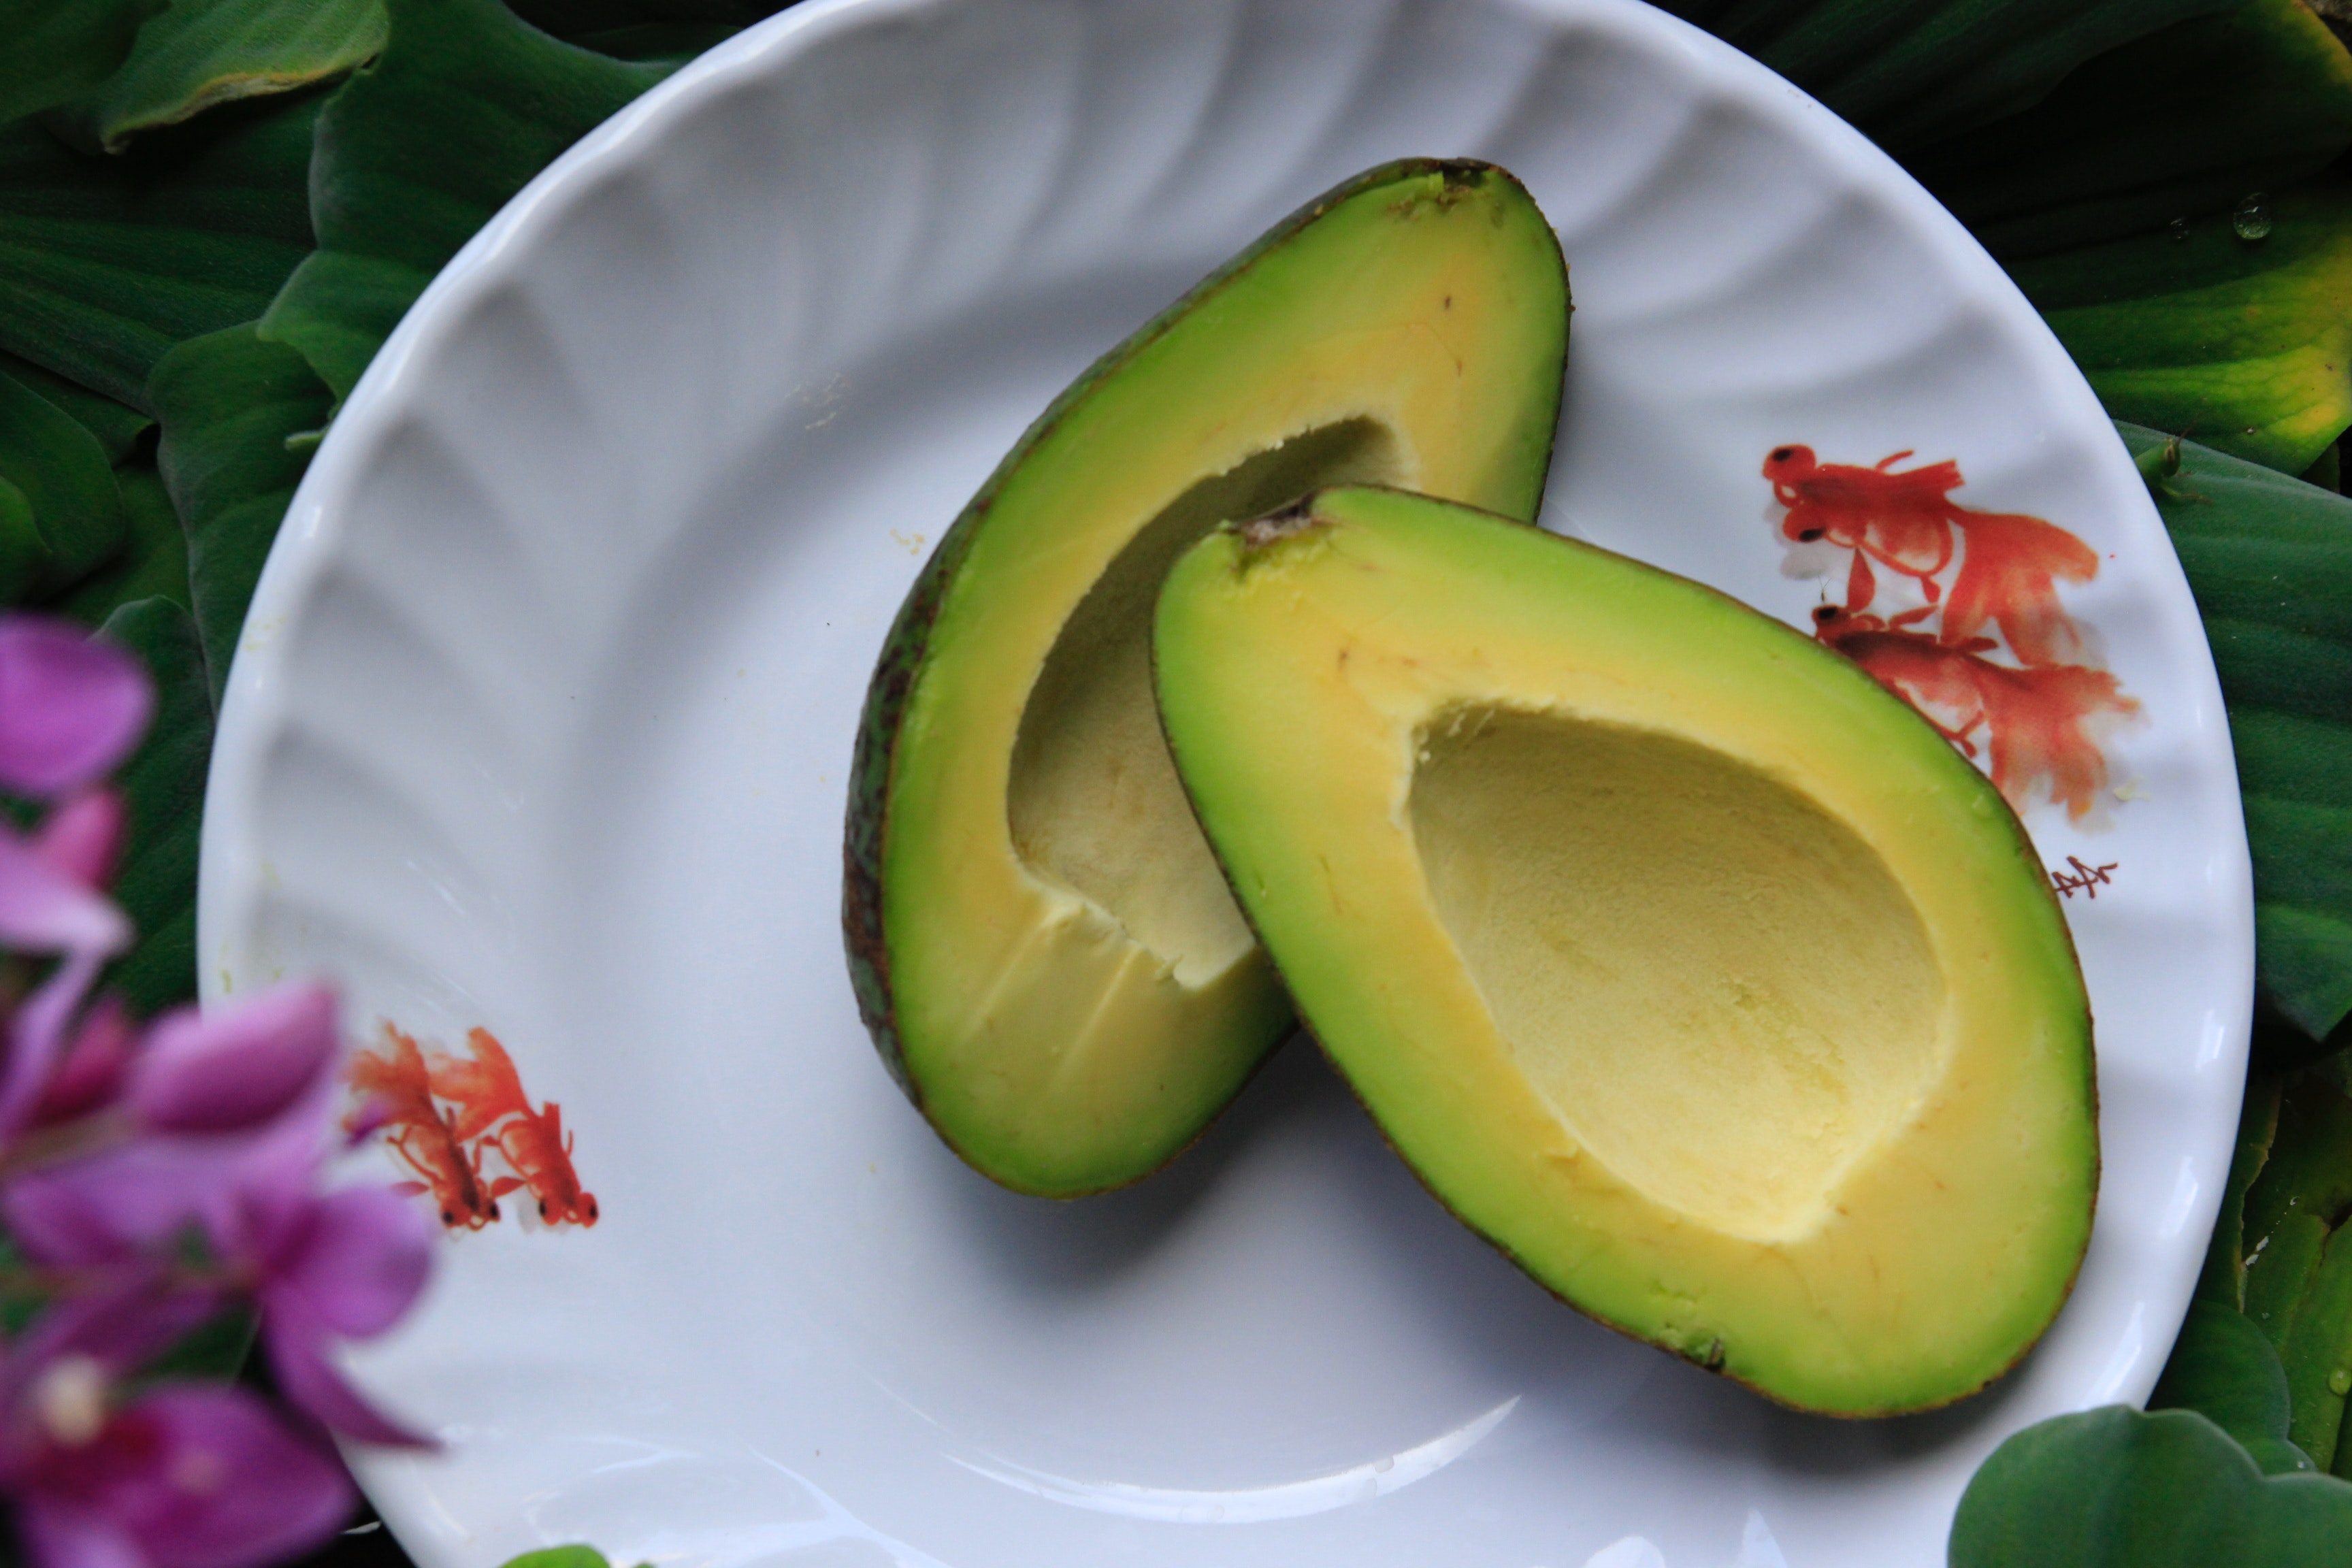 Avocado Fruits Images